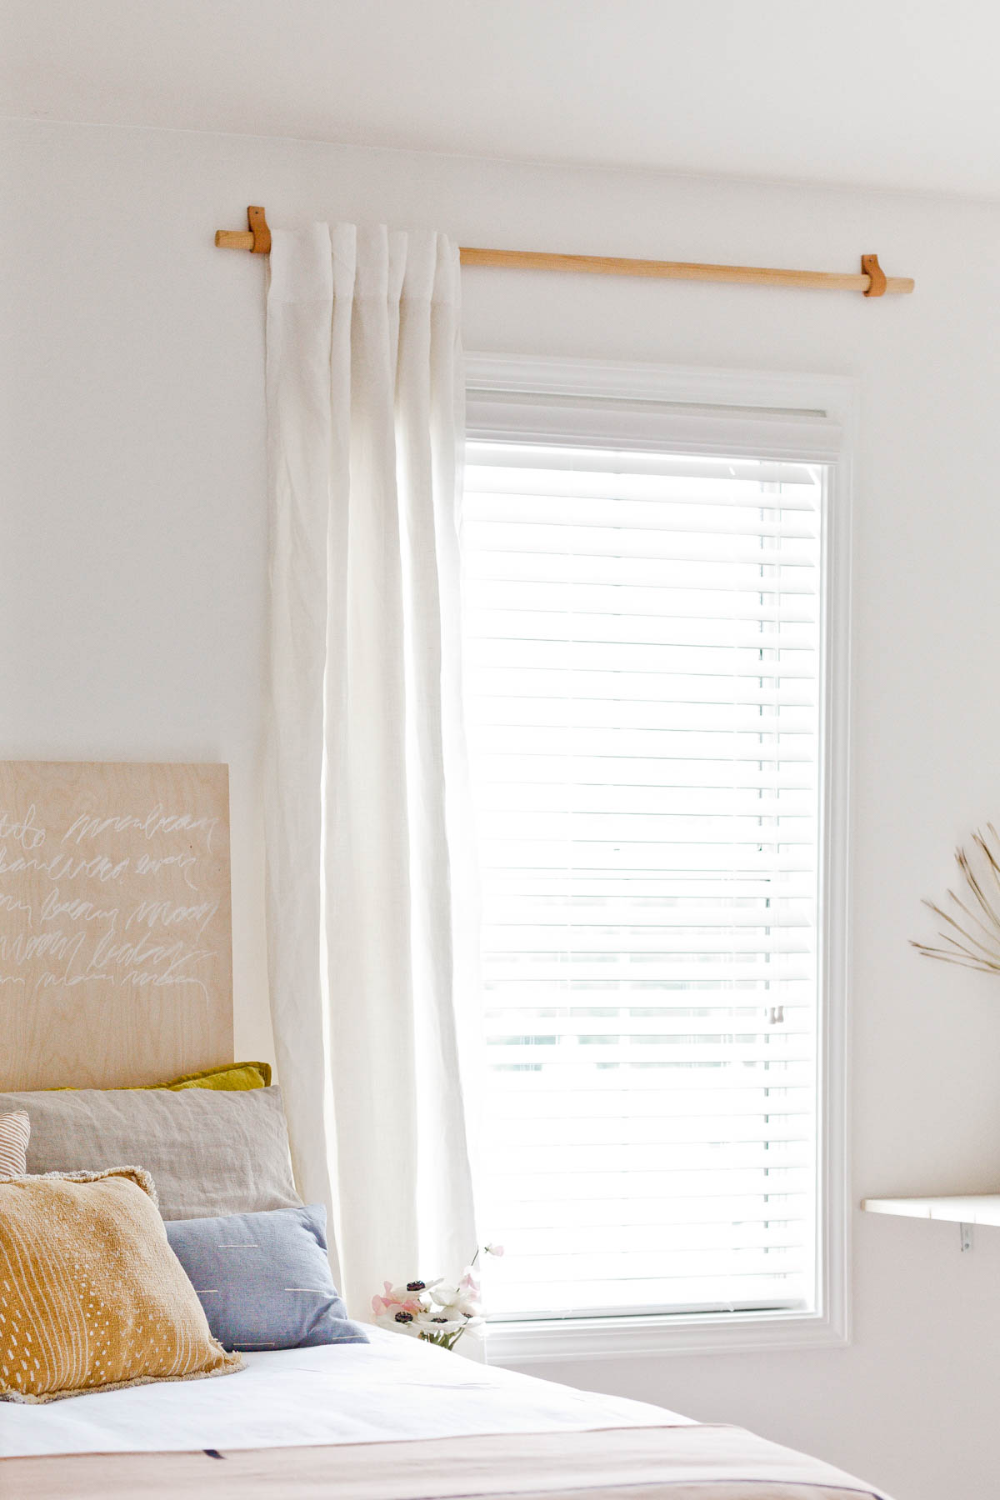 How to Make a Simple Curtain Rod for Less than 10 in 2020